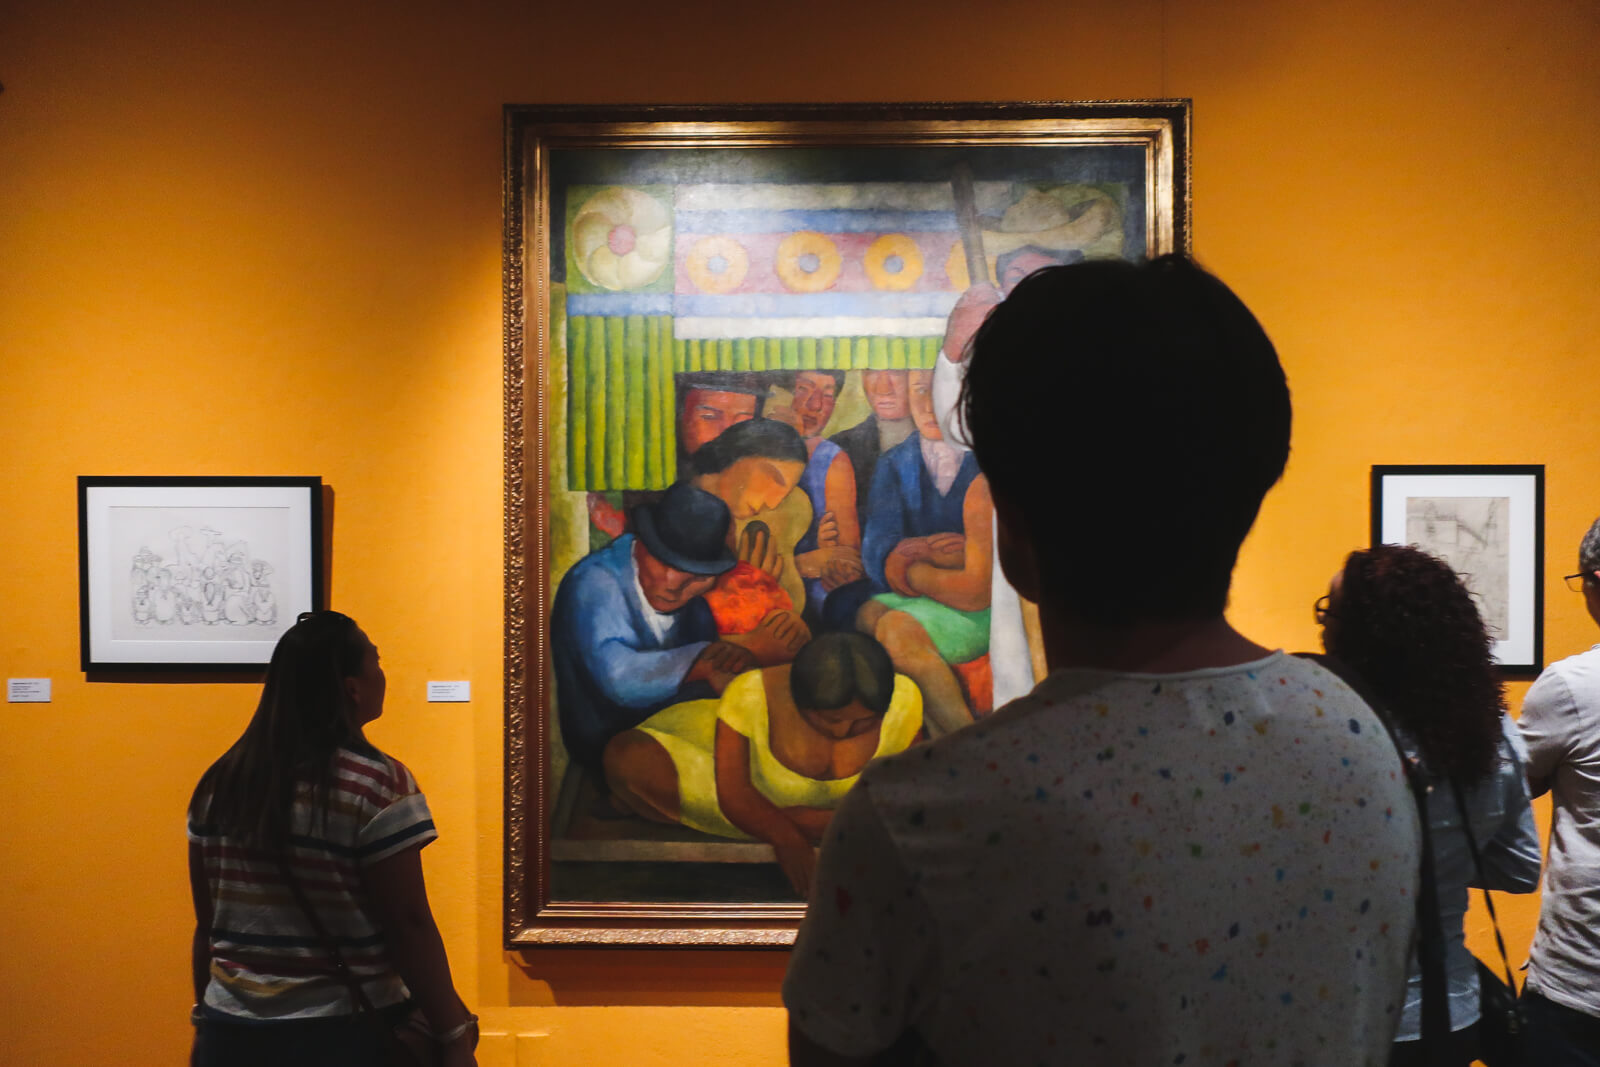 My friends looking at Diego Rivera's painting of Xochimilco while in Xochimilco.